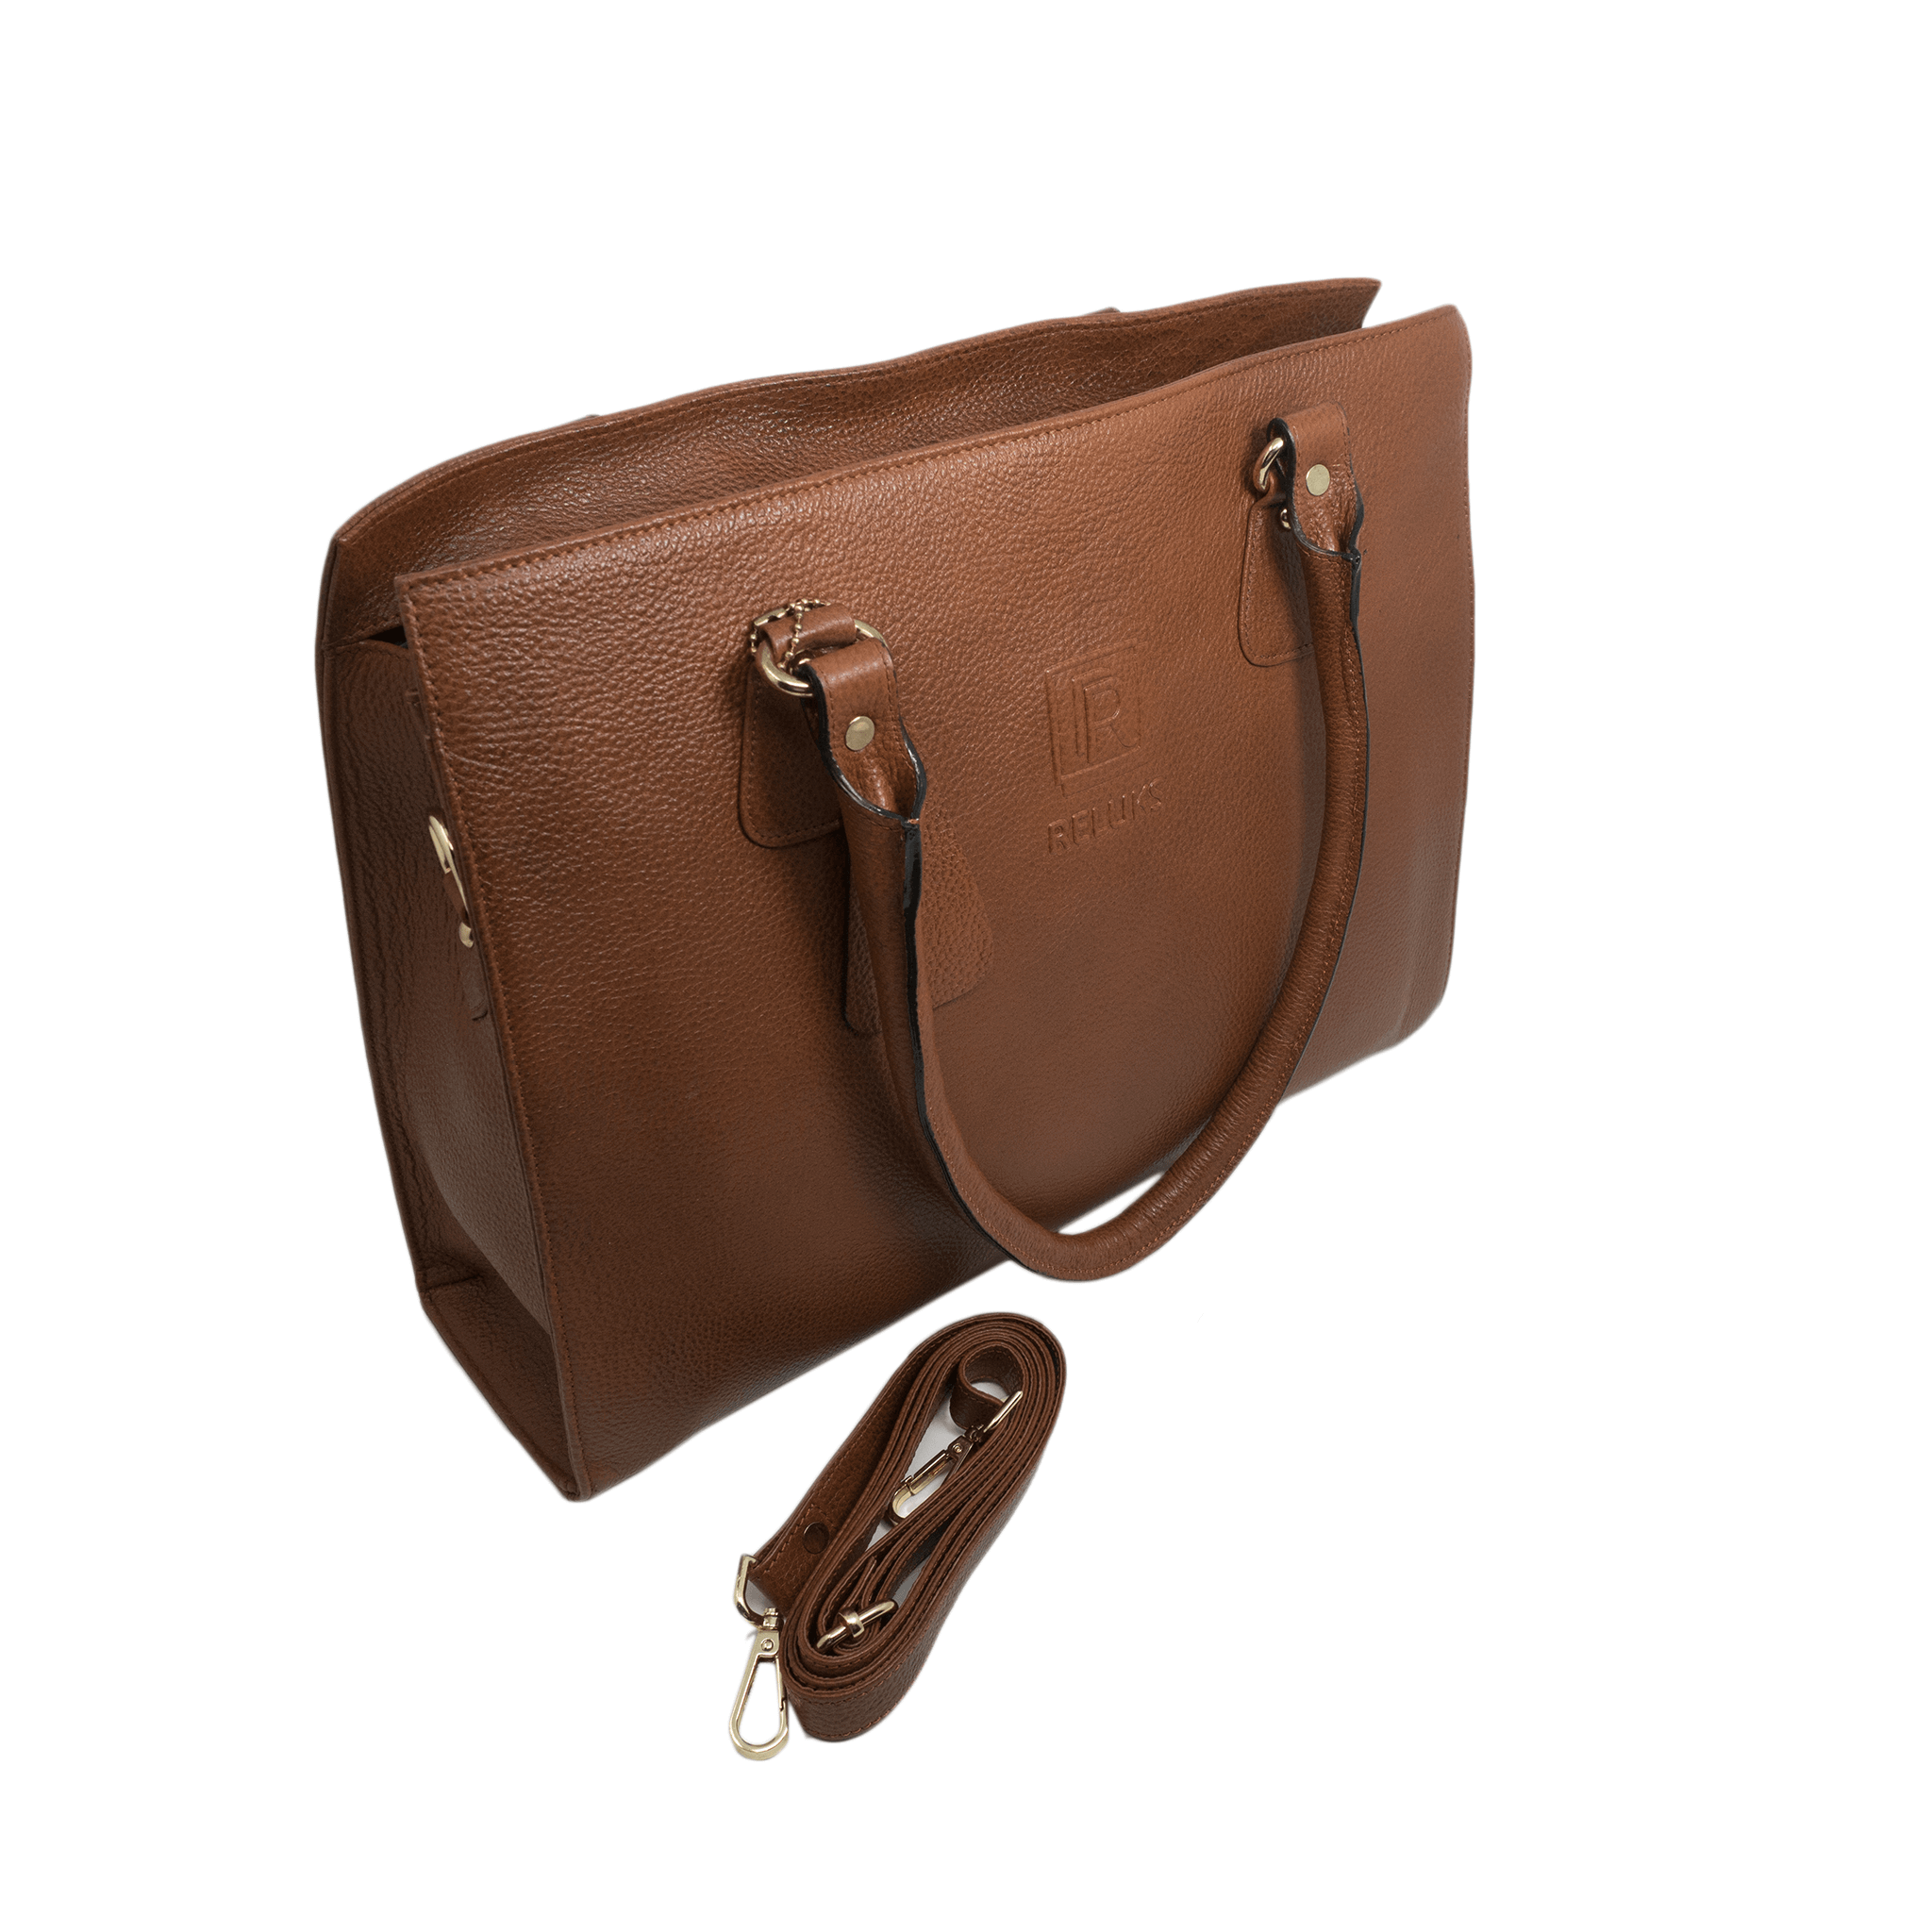 Handcrafted tan brown leather shoulder bag side view with detachable strap for women by RELUKS